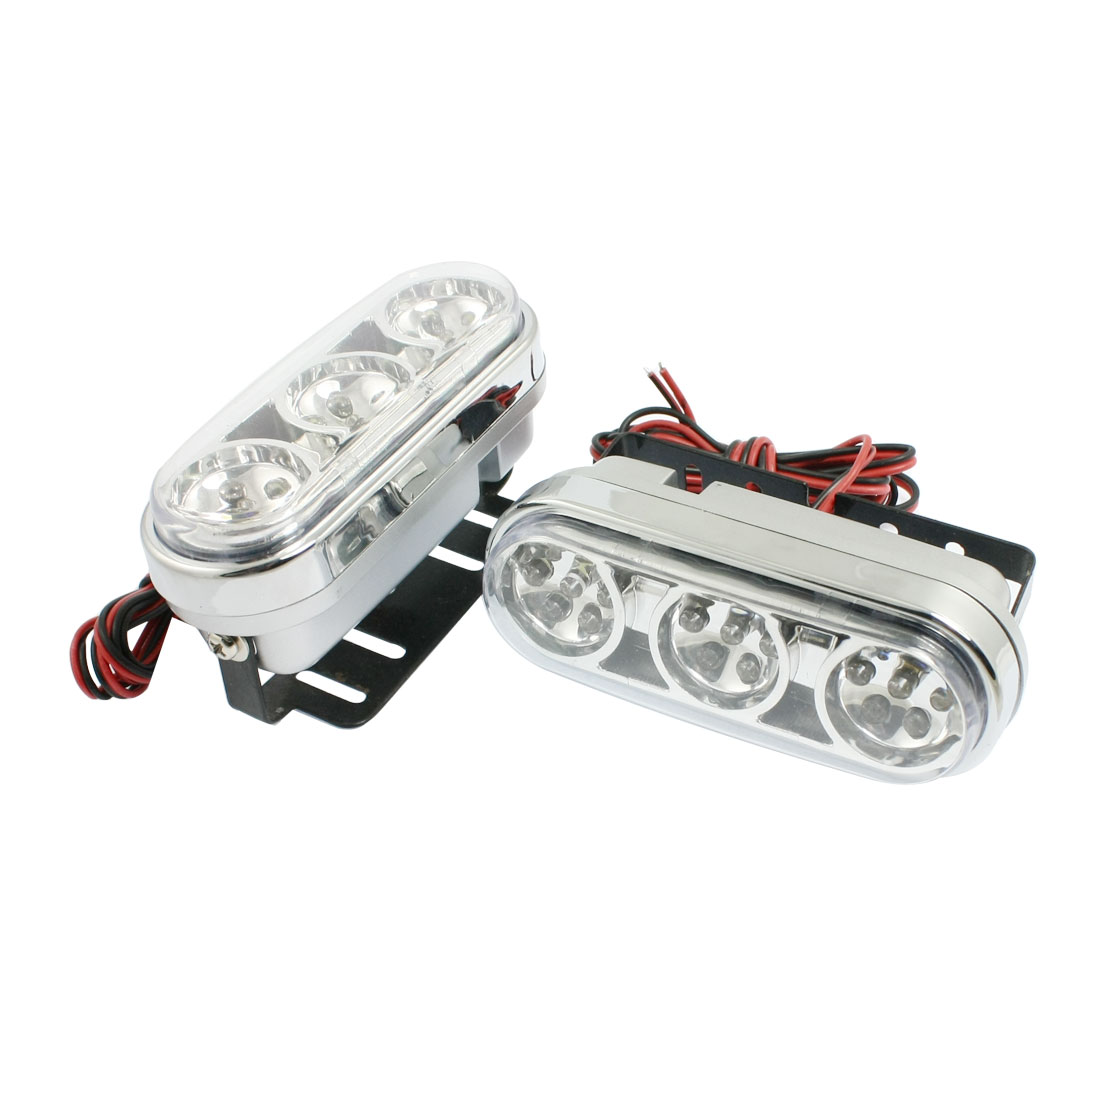 2 Pcs Car Auto White 21-LED Fog Day Daytime Running Light Lamp